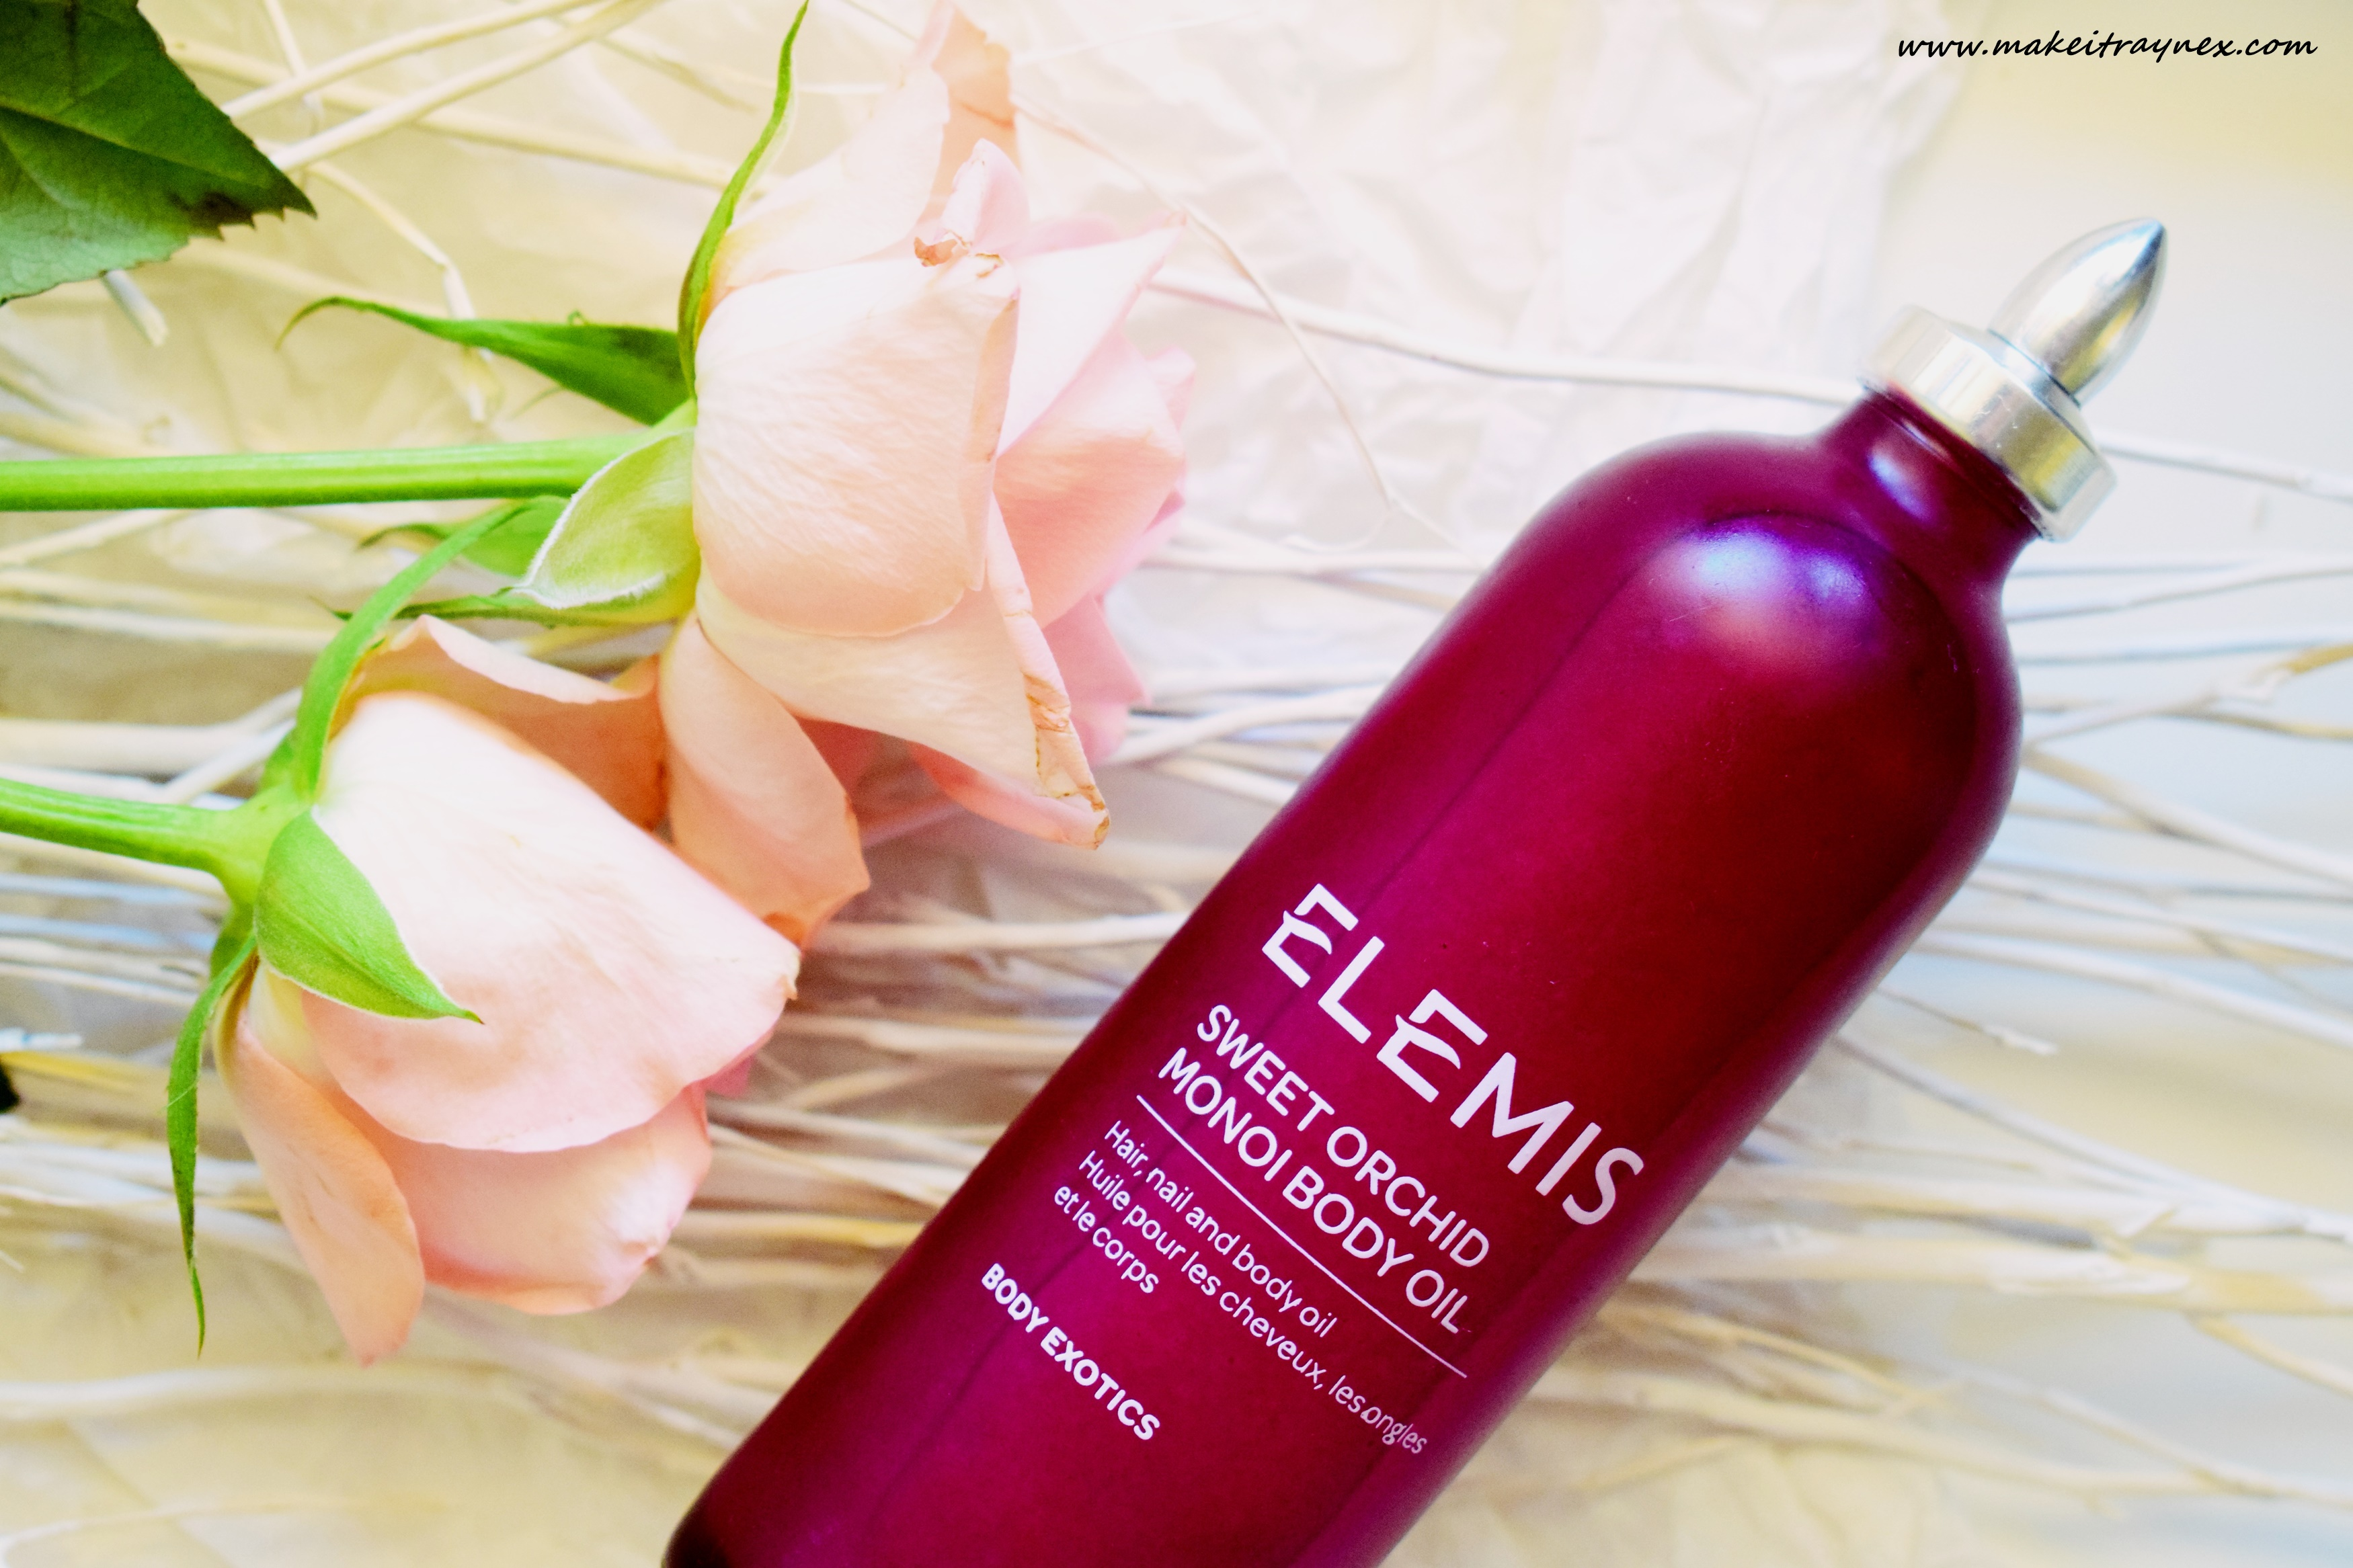 Sweet Orchid Monoi Body Oil from Elemis {REVIEW}